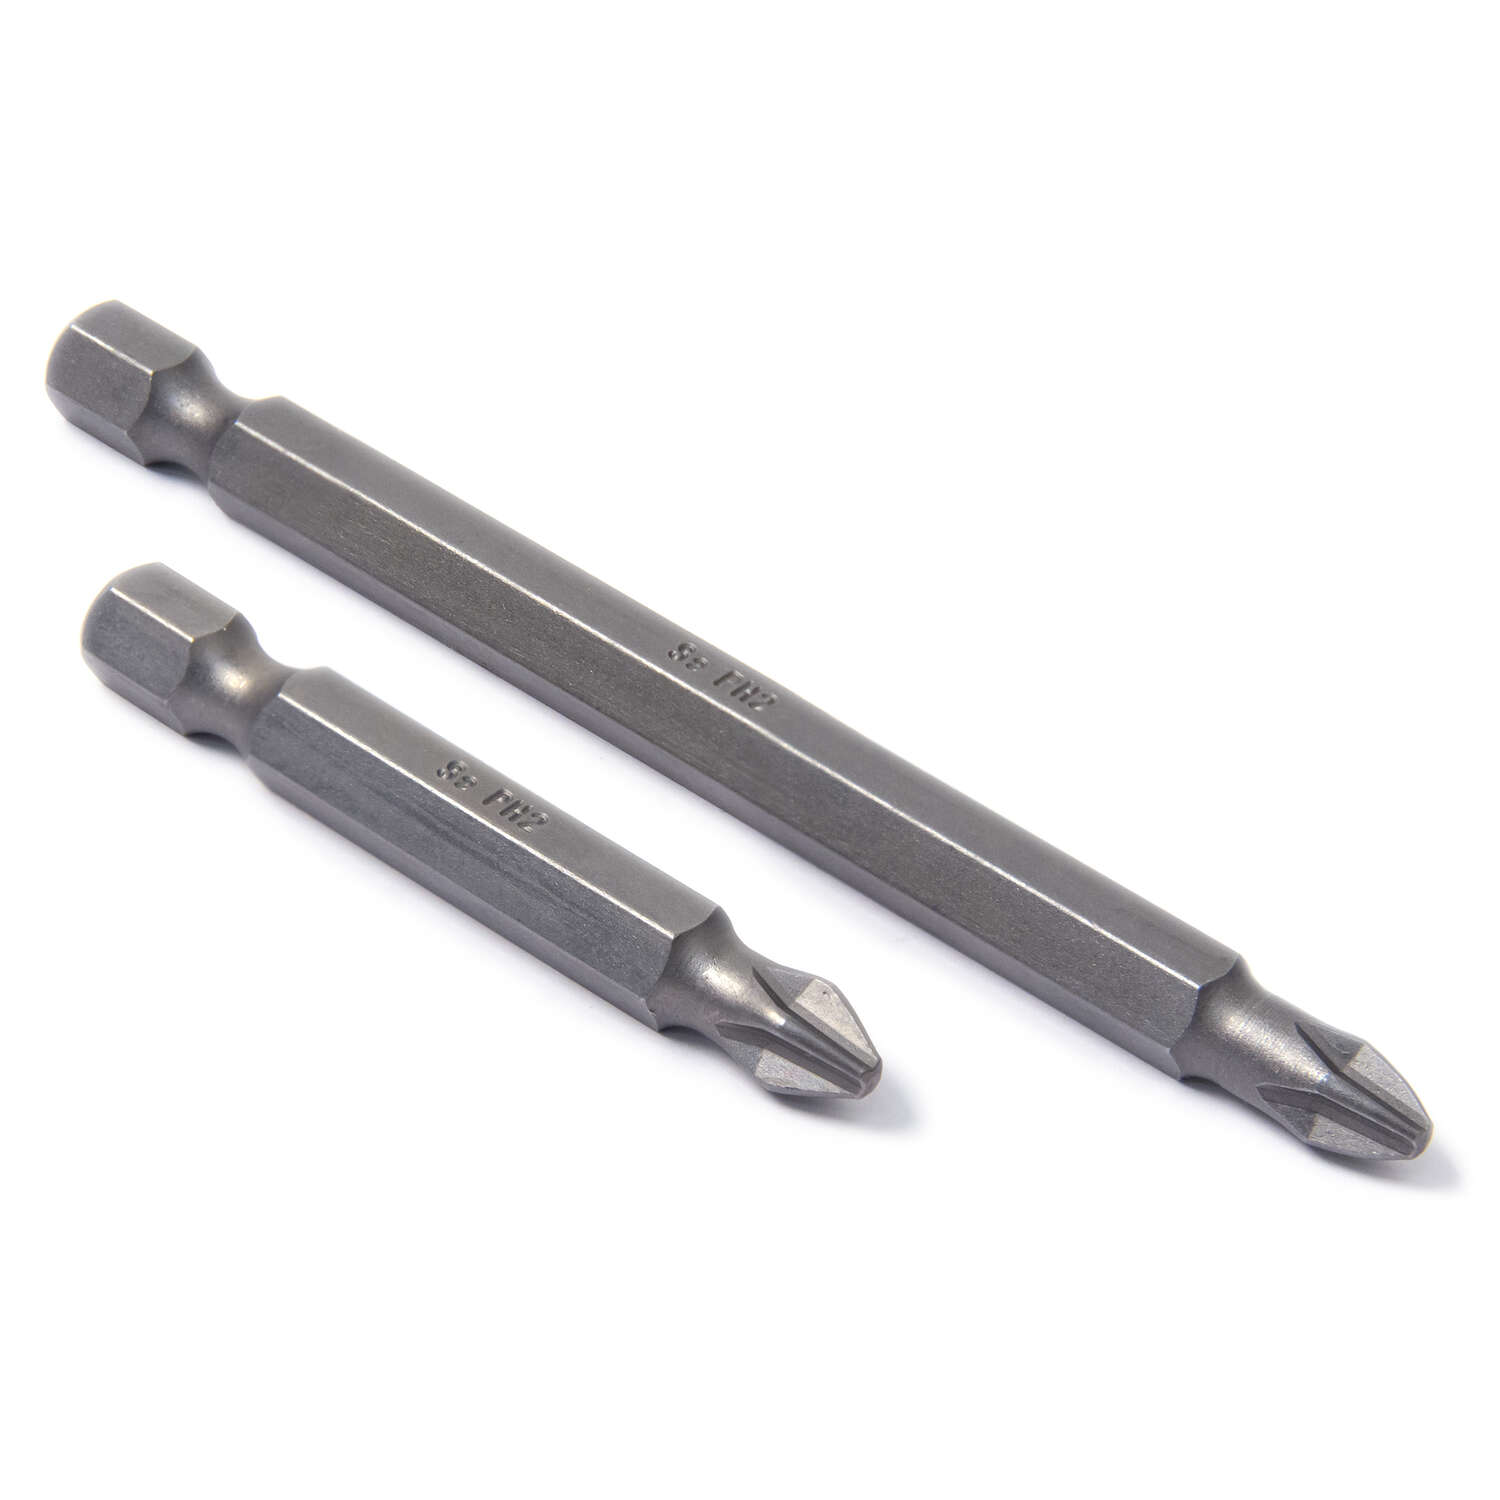 Ace  Phillips  2   x 2 and 3-1/2 in. L S2 Tool Steel  Screwdriver Bit  Quick-Change Hex Shank  2 pc.